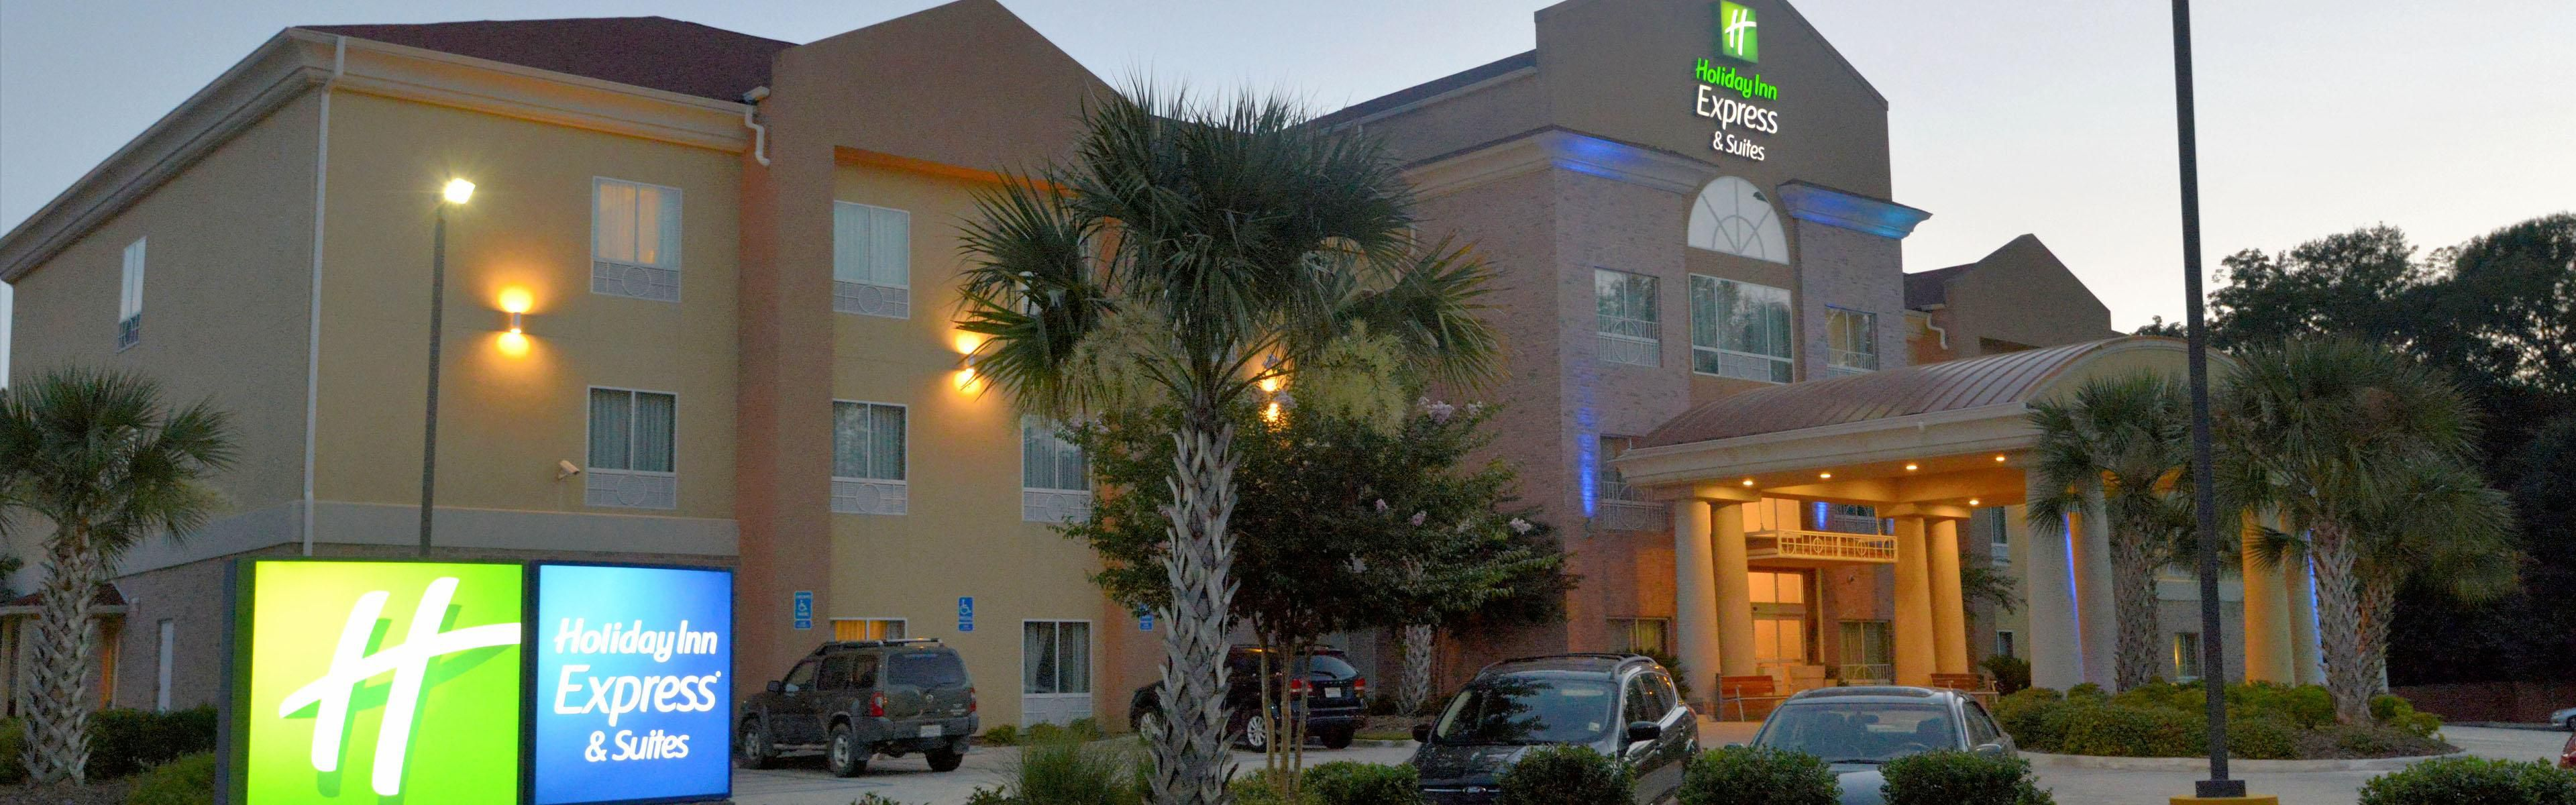 Holiday Inn Express & Suites Baton Rouge North image 0